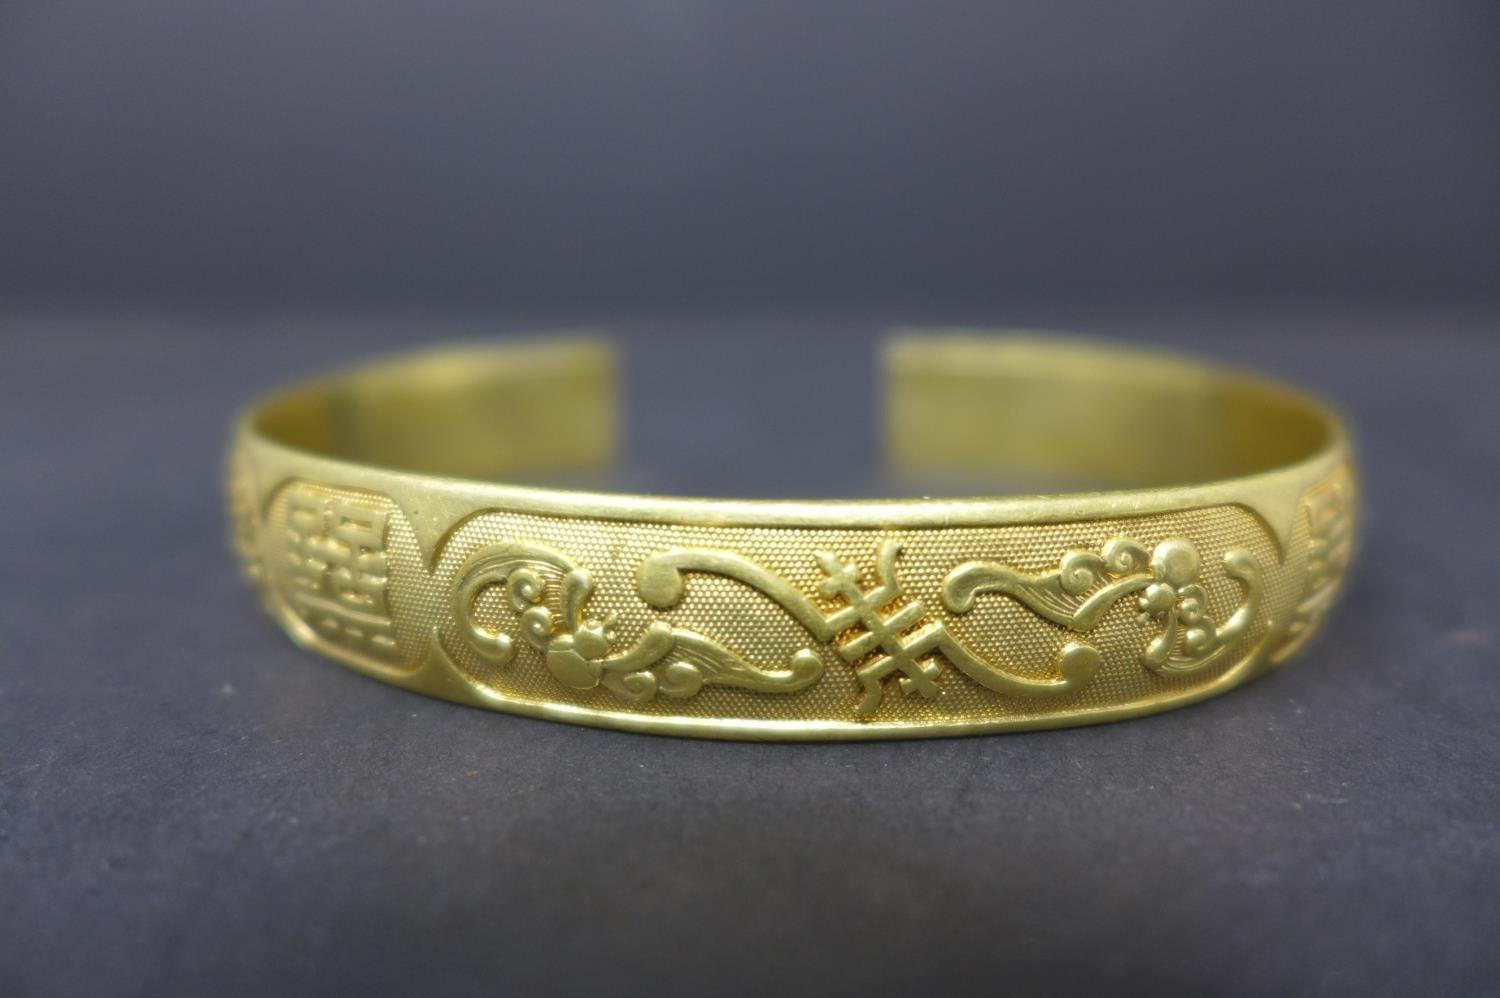 Lot 265 - A Chinese silver gilt bangle, decorated with phoenixes, scrolling foliage and Chinese symbols,